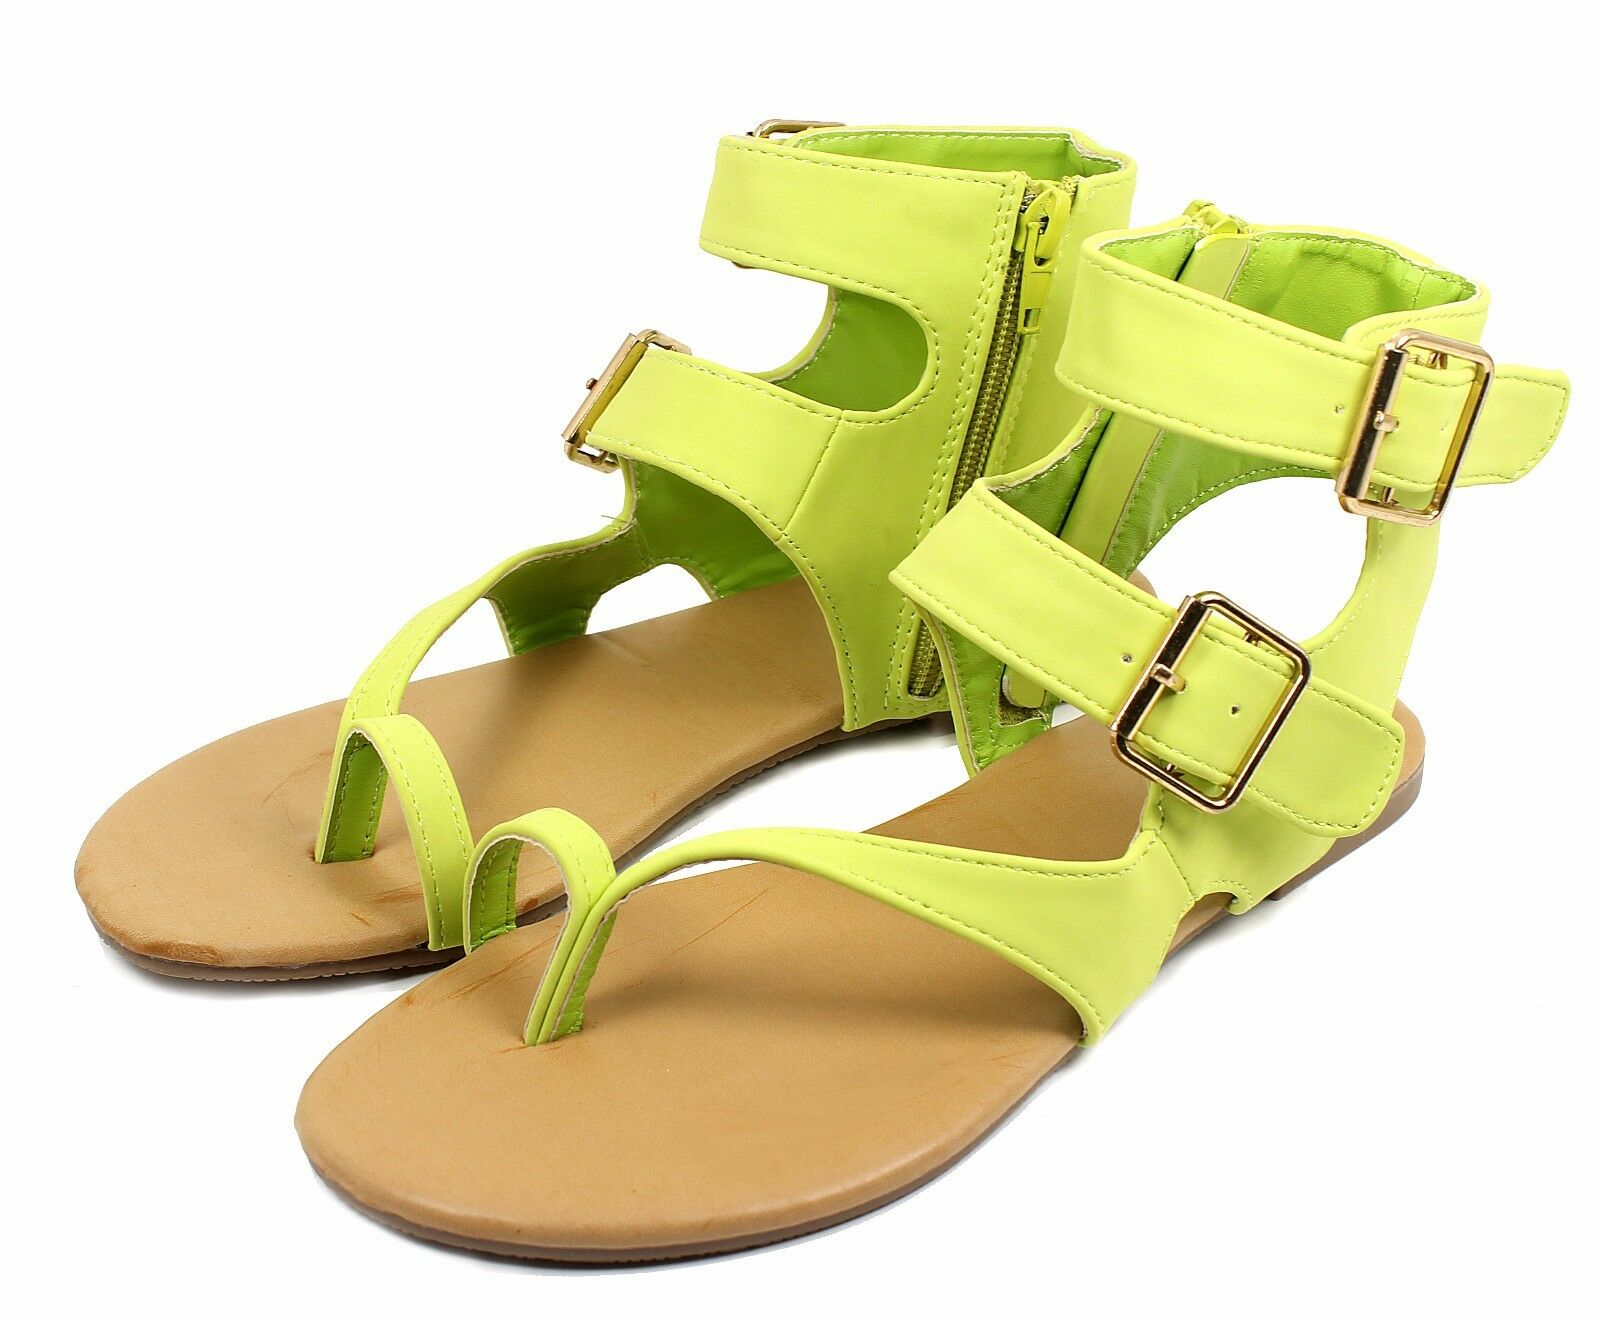 Nadya-08 Buckles Zipper Flats Cute Gladiator Lime Sandals Party Women's Shoes Lime Gladiator a5f8f0